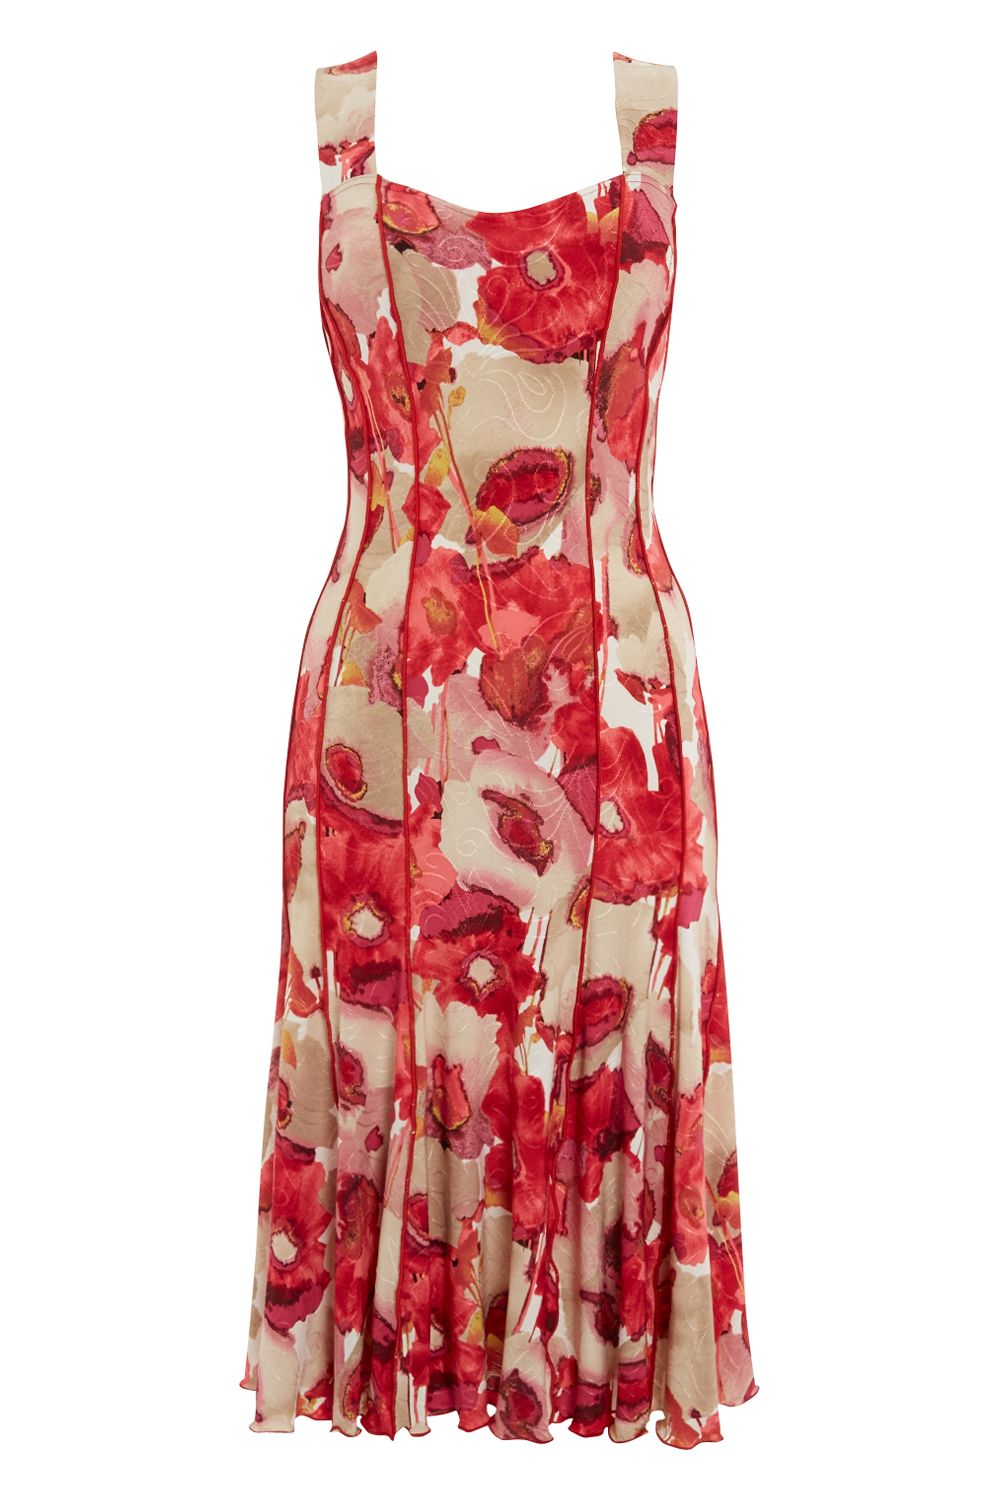 Roman Originals Floral Printed Panel Dress, Red